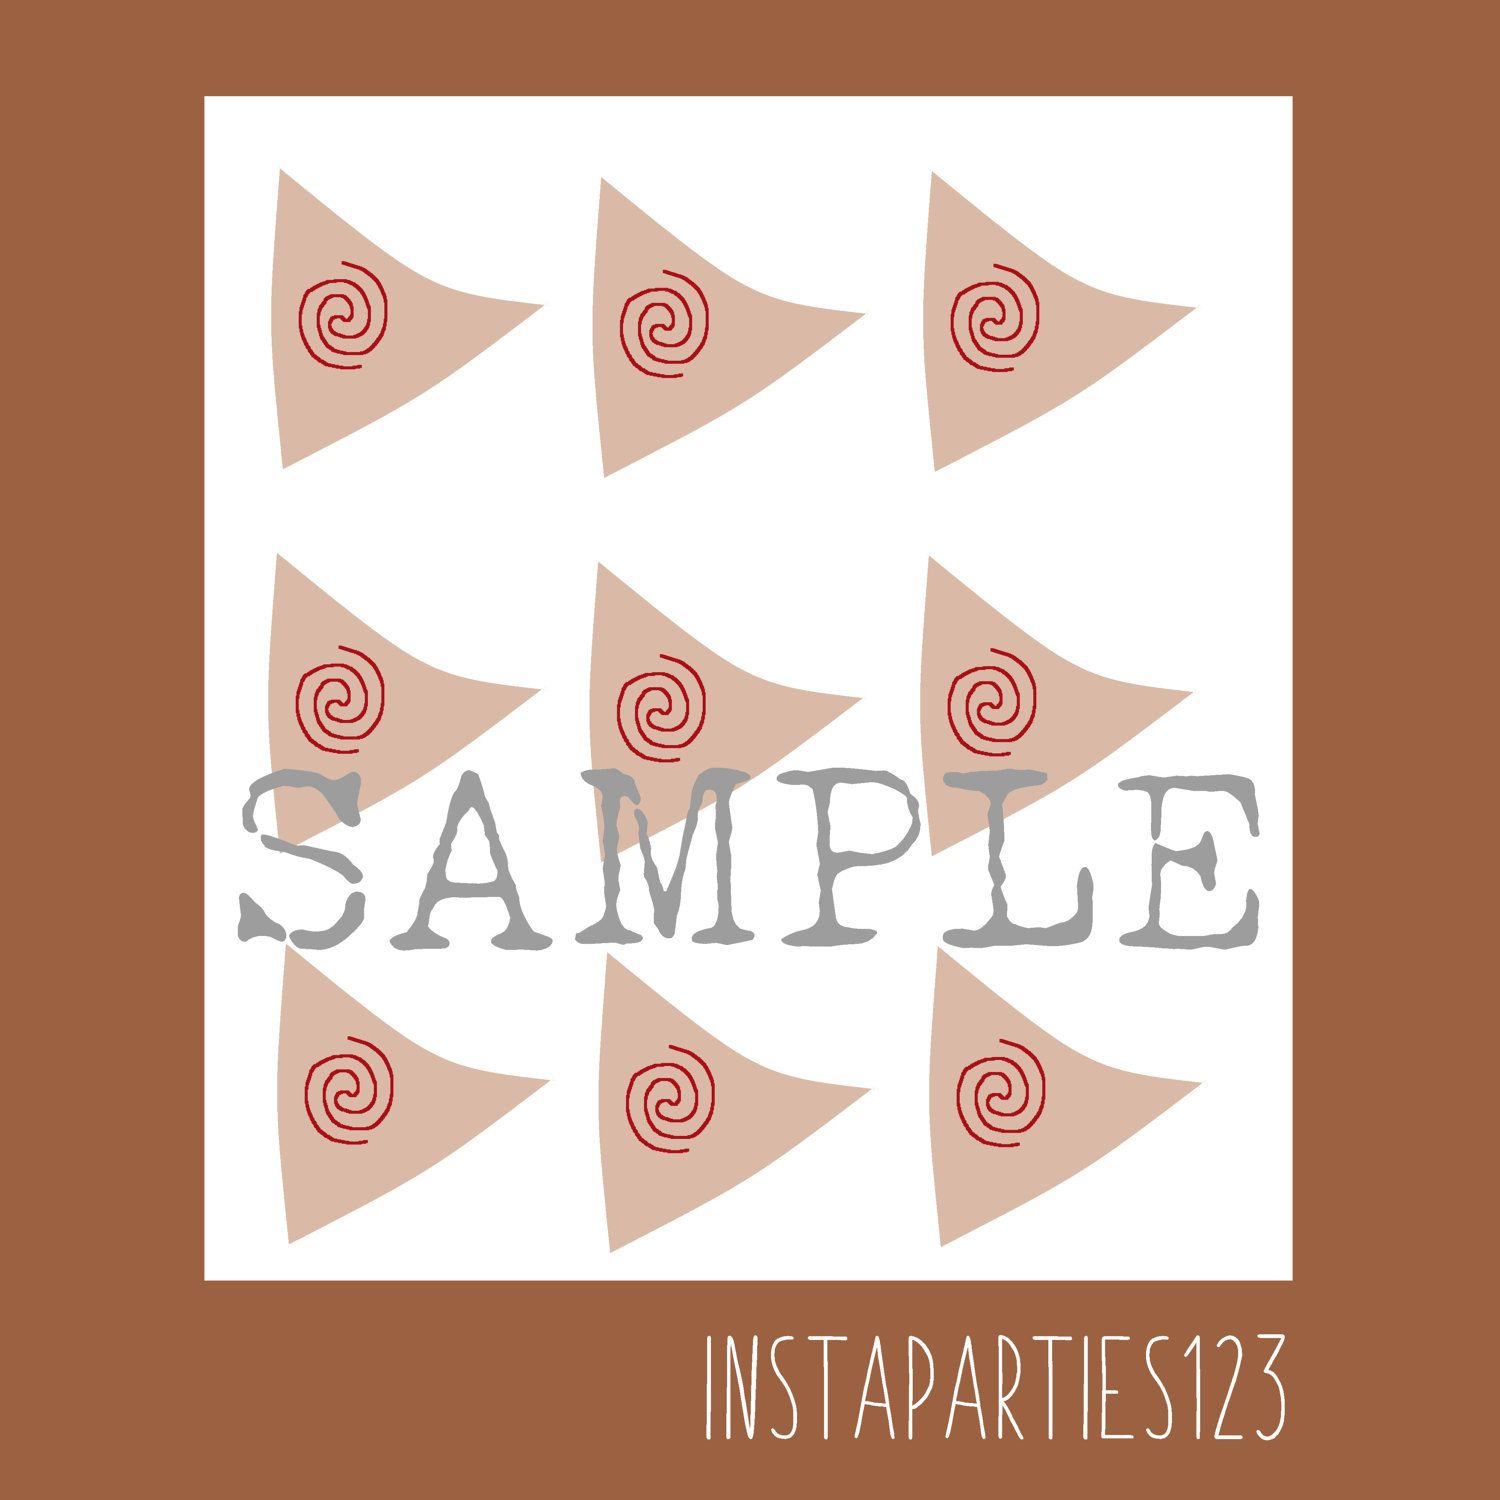 image regarding Moana Sail Printable identified as Electronic Moana Sailboat Cup Cake Topper Immediate Obtain